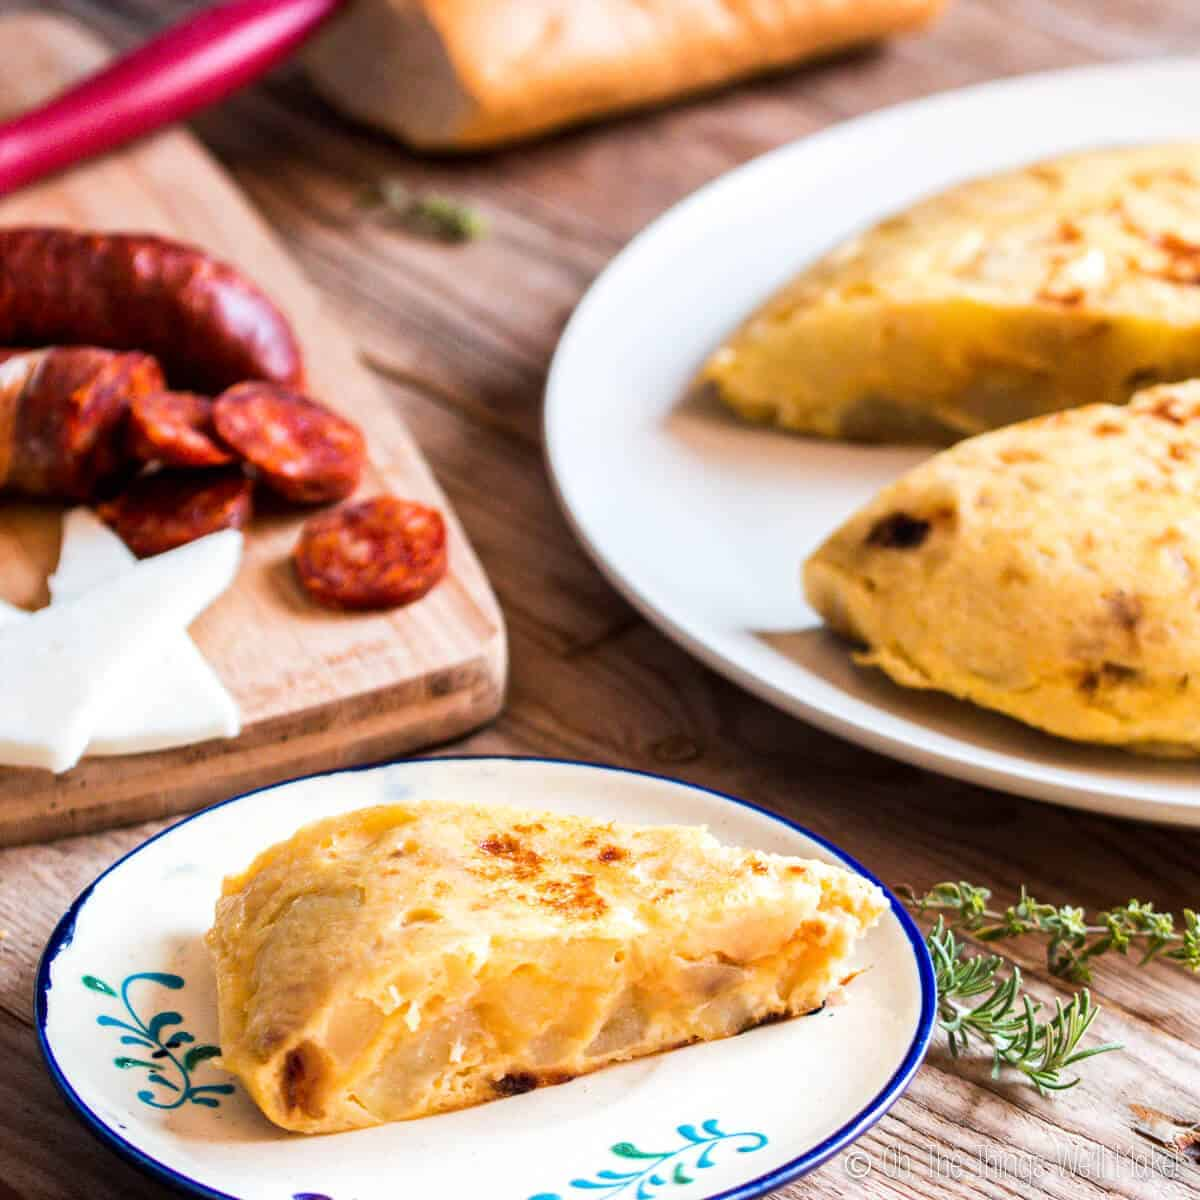 A slice of Spanish tortilla on a plate in front of some chorizo and cheese and the rest of the tortilla.